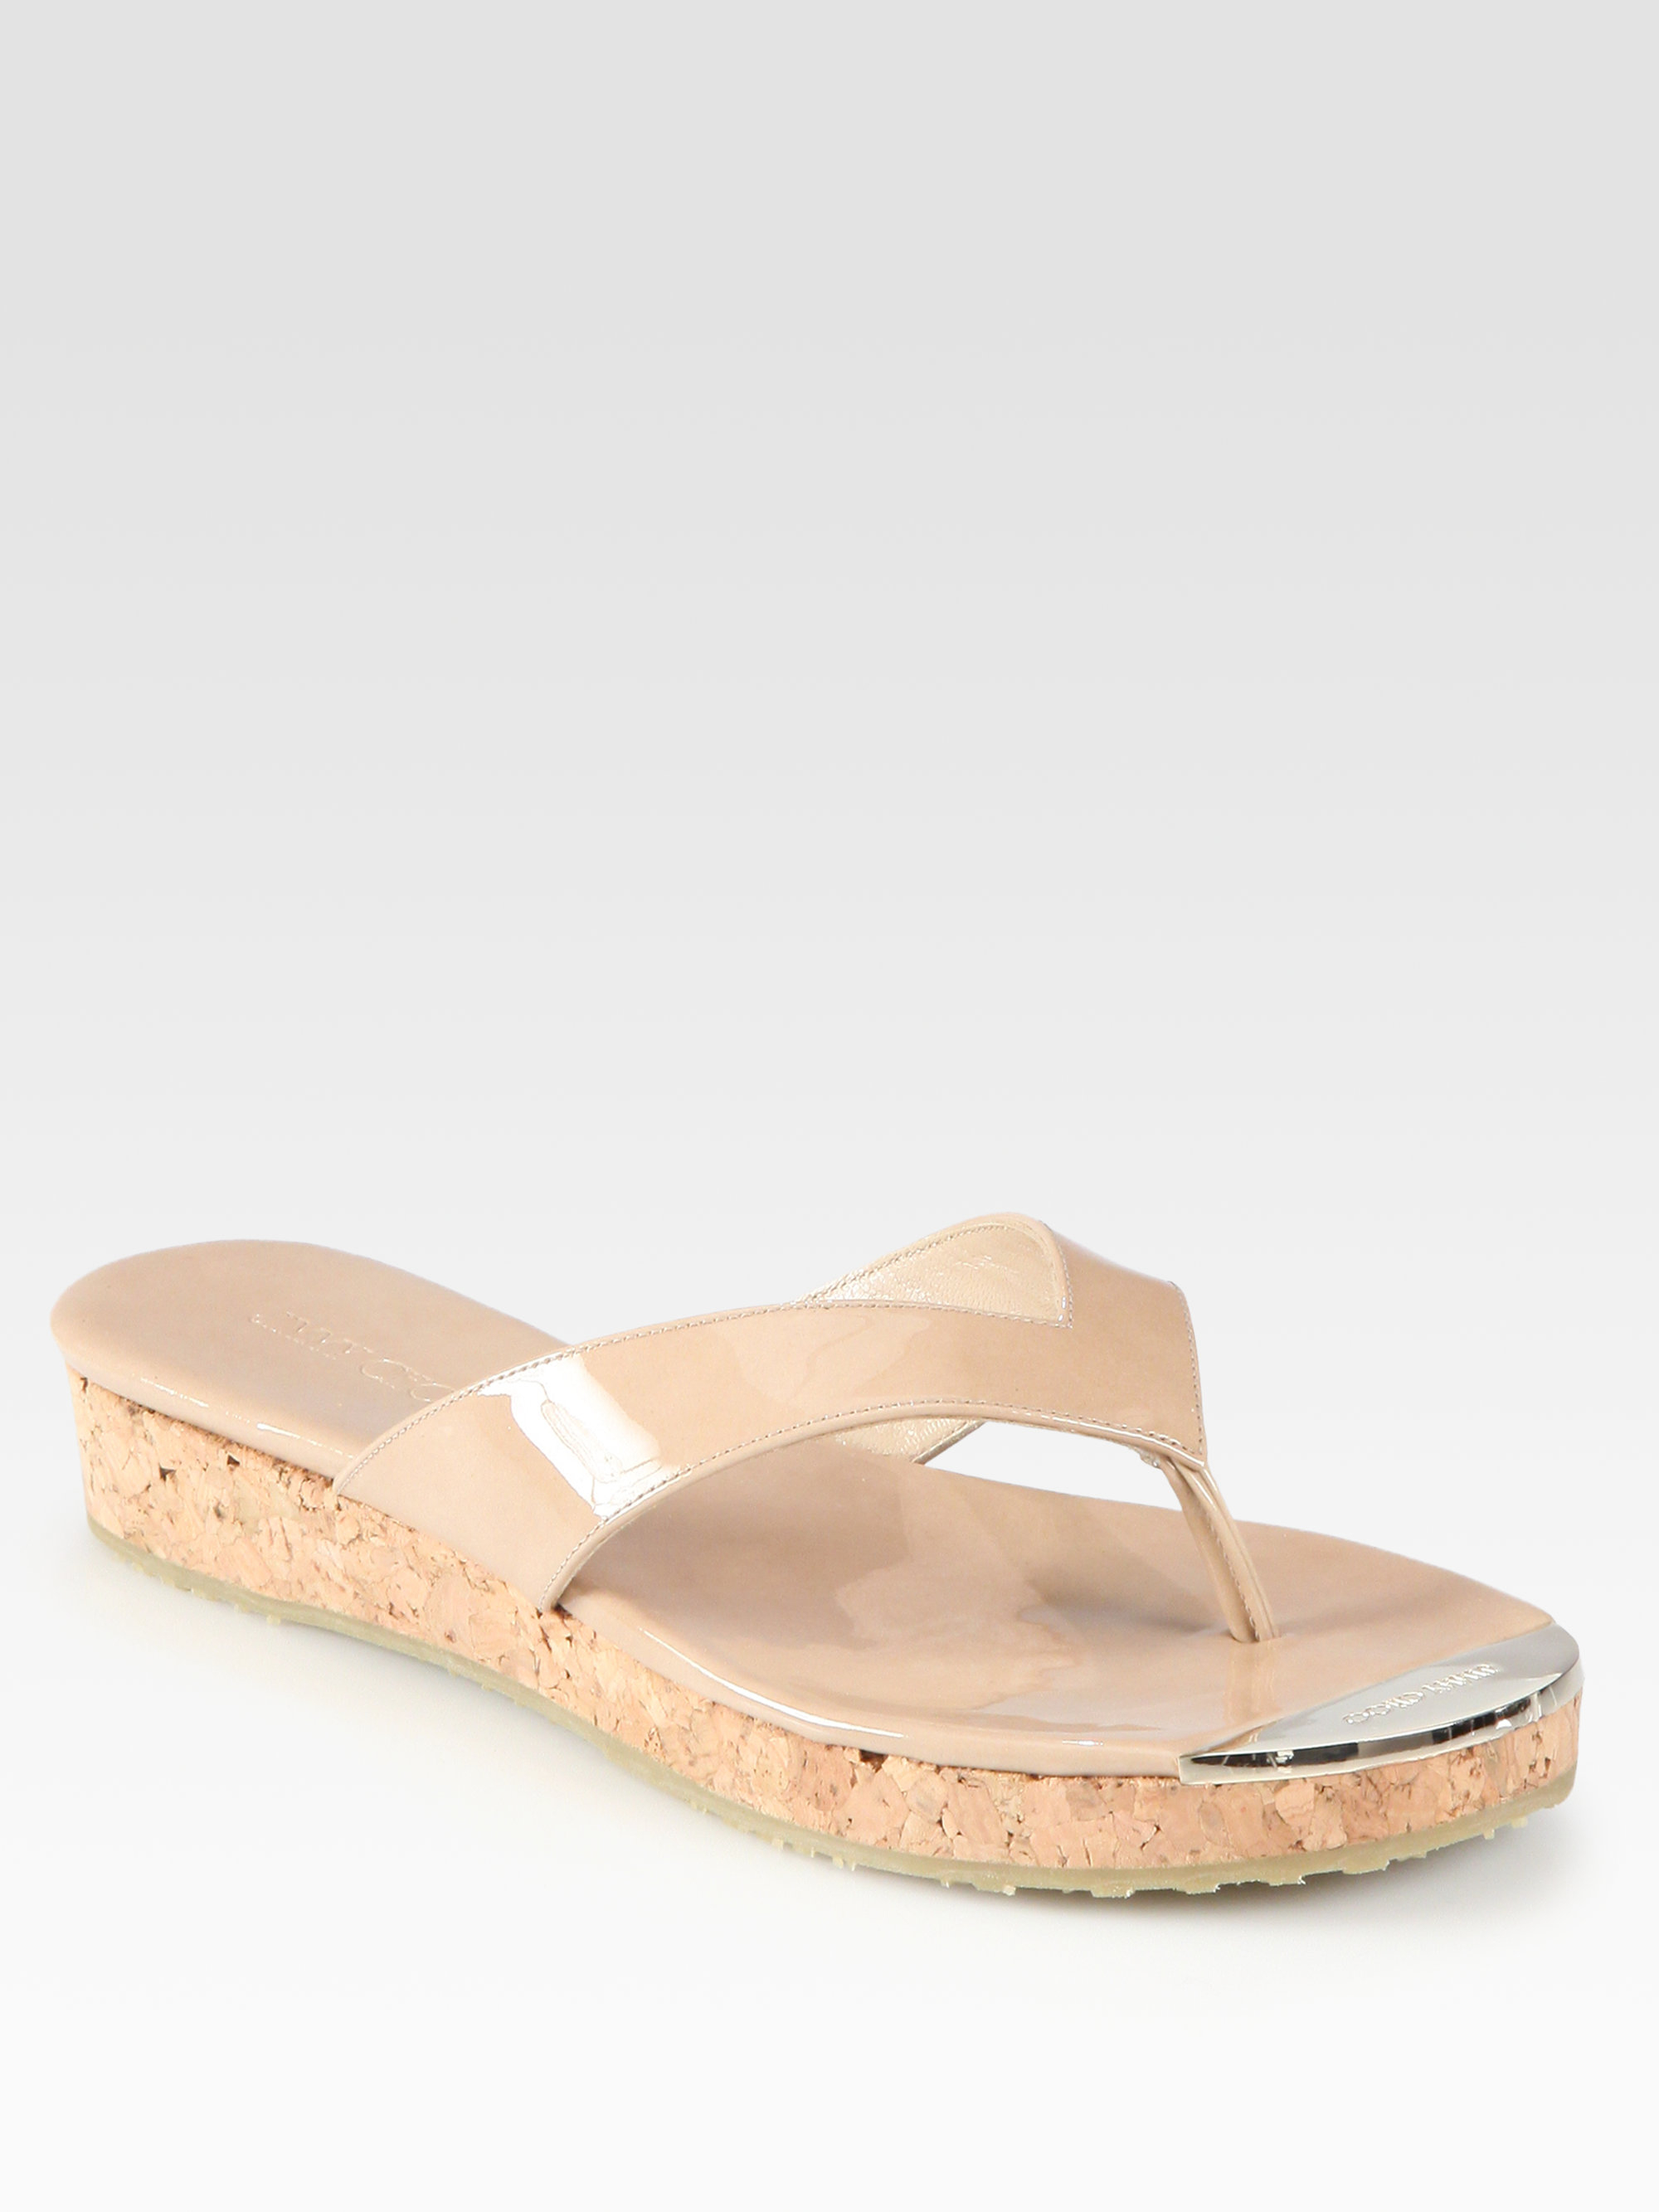 806a861eac10 Lyst - Jimmy Choo Pence Patent Leather Cork Wedge Sandals in Natural